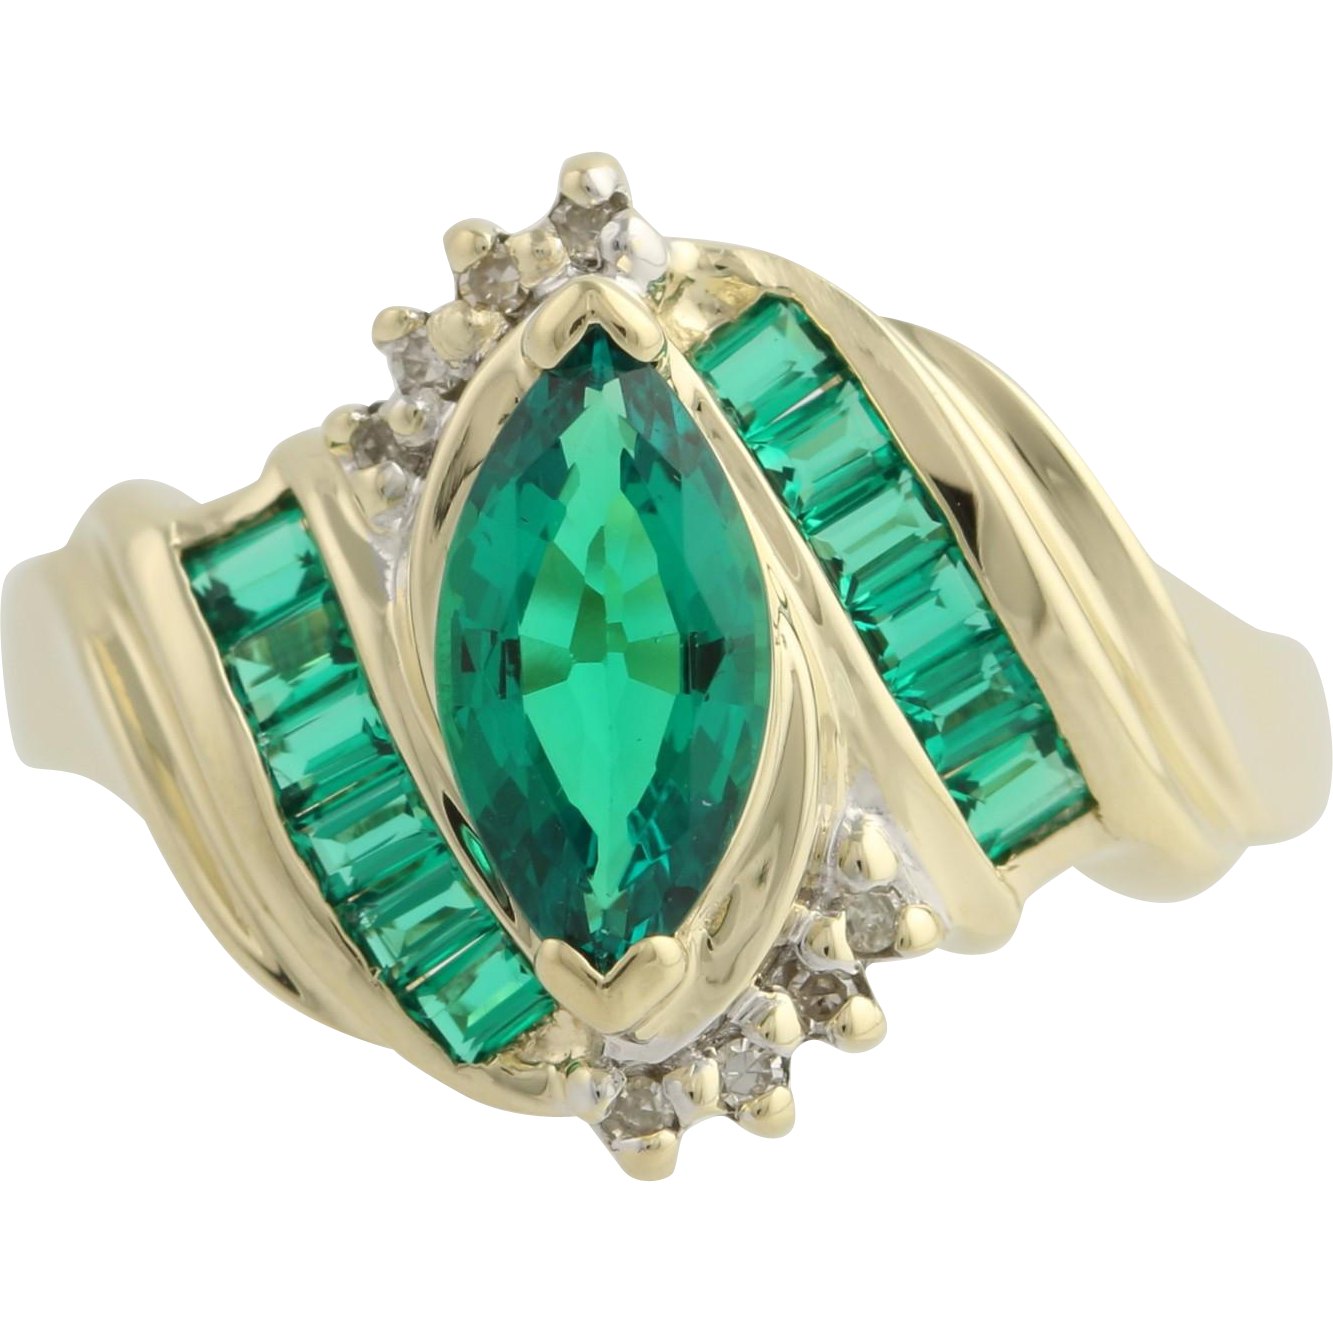 Synthetic Emerald and Diamond Cocktail Ring - 10k Yellow & White Gold Fine 1.80ctw